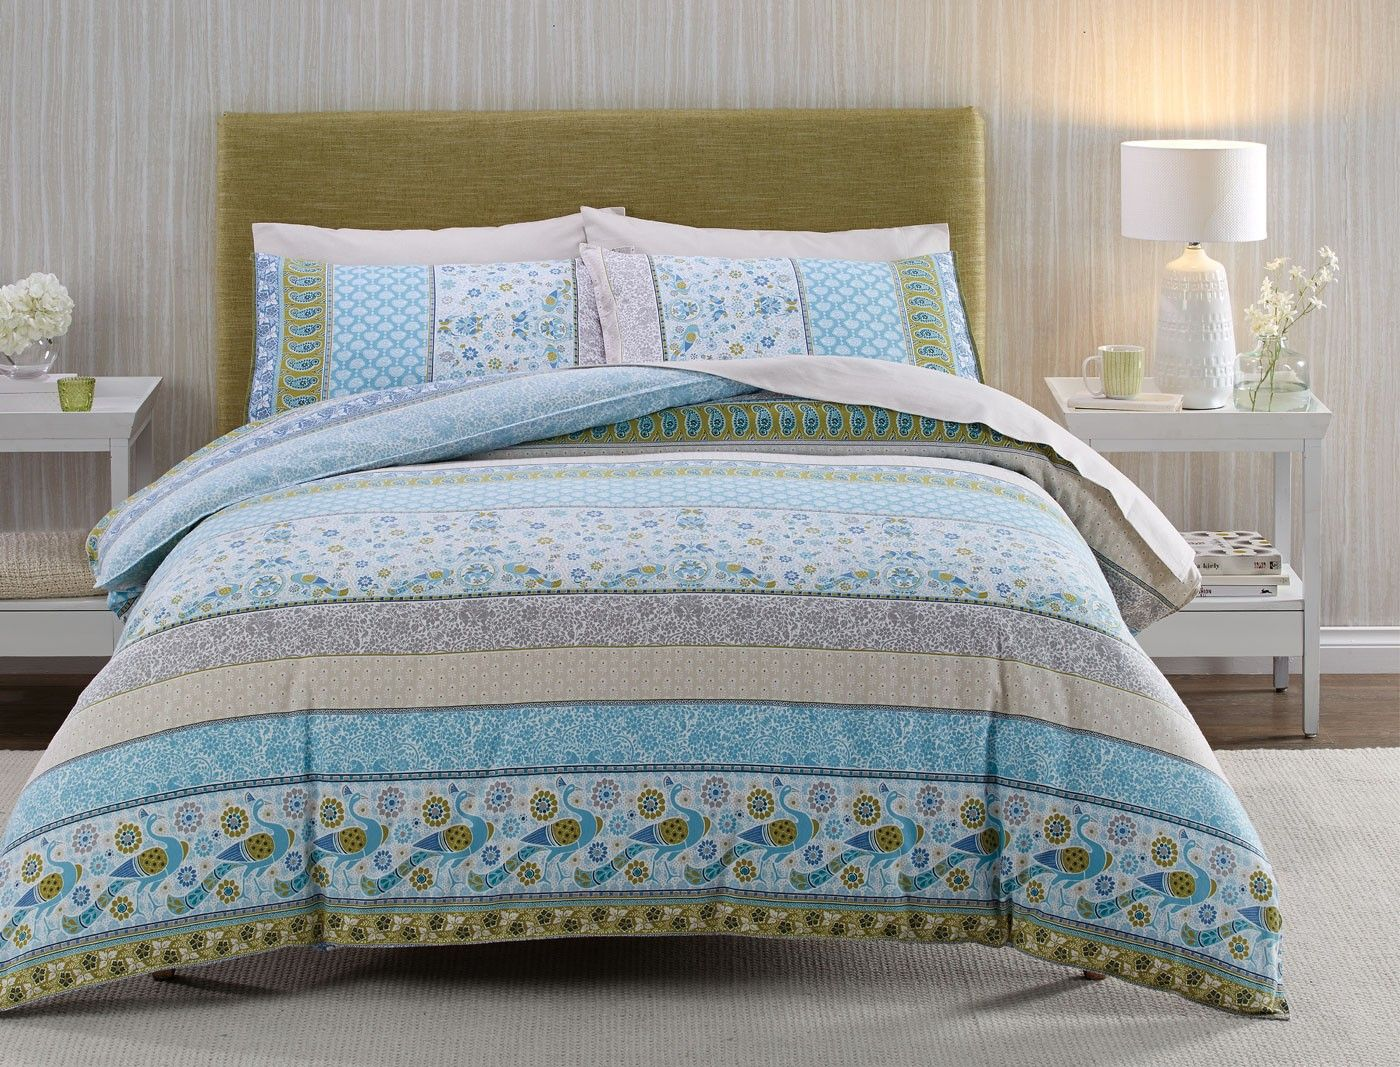 celine flannelette quilt cover set bed bath nu0027 table